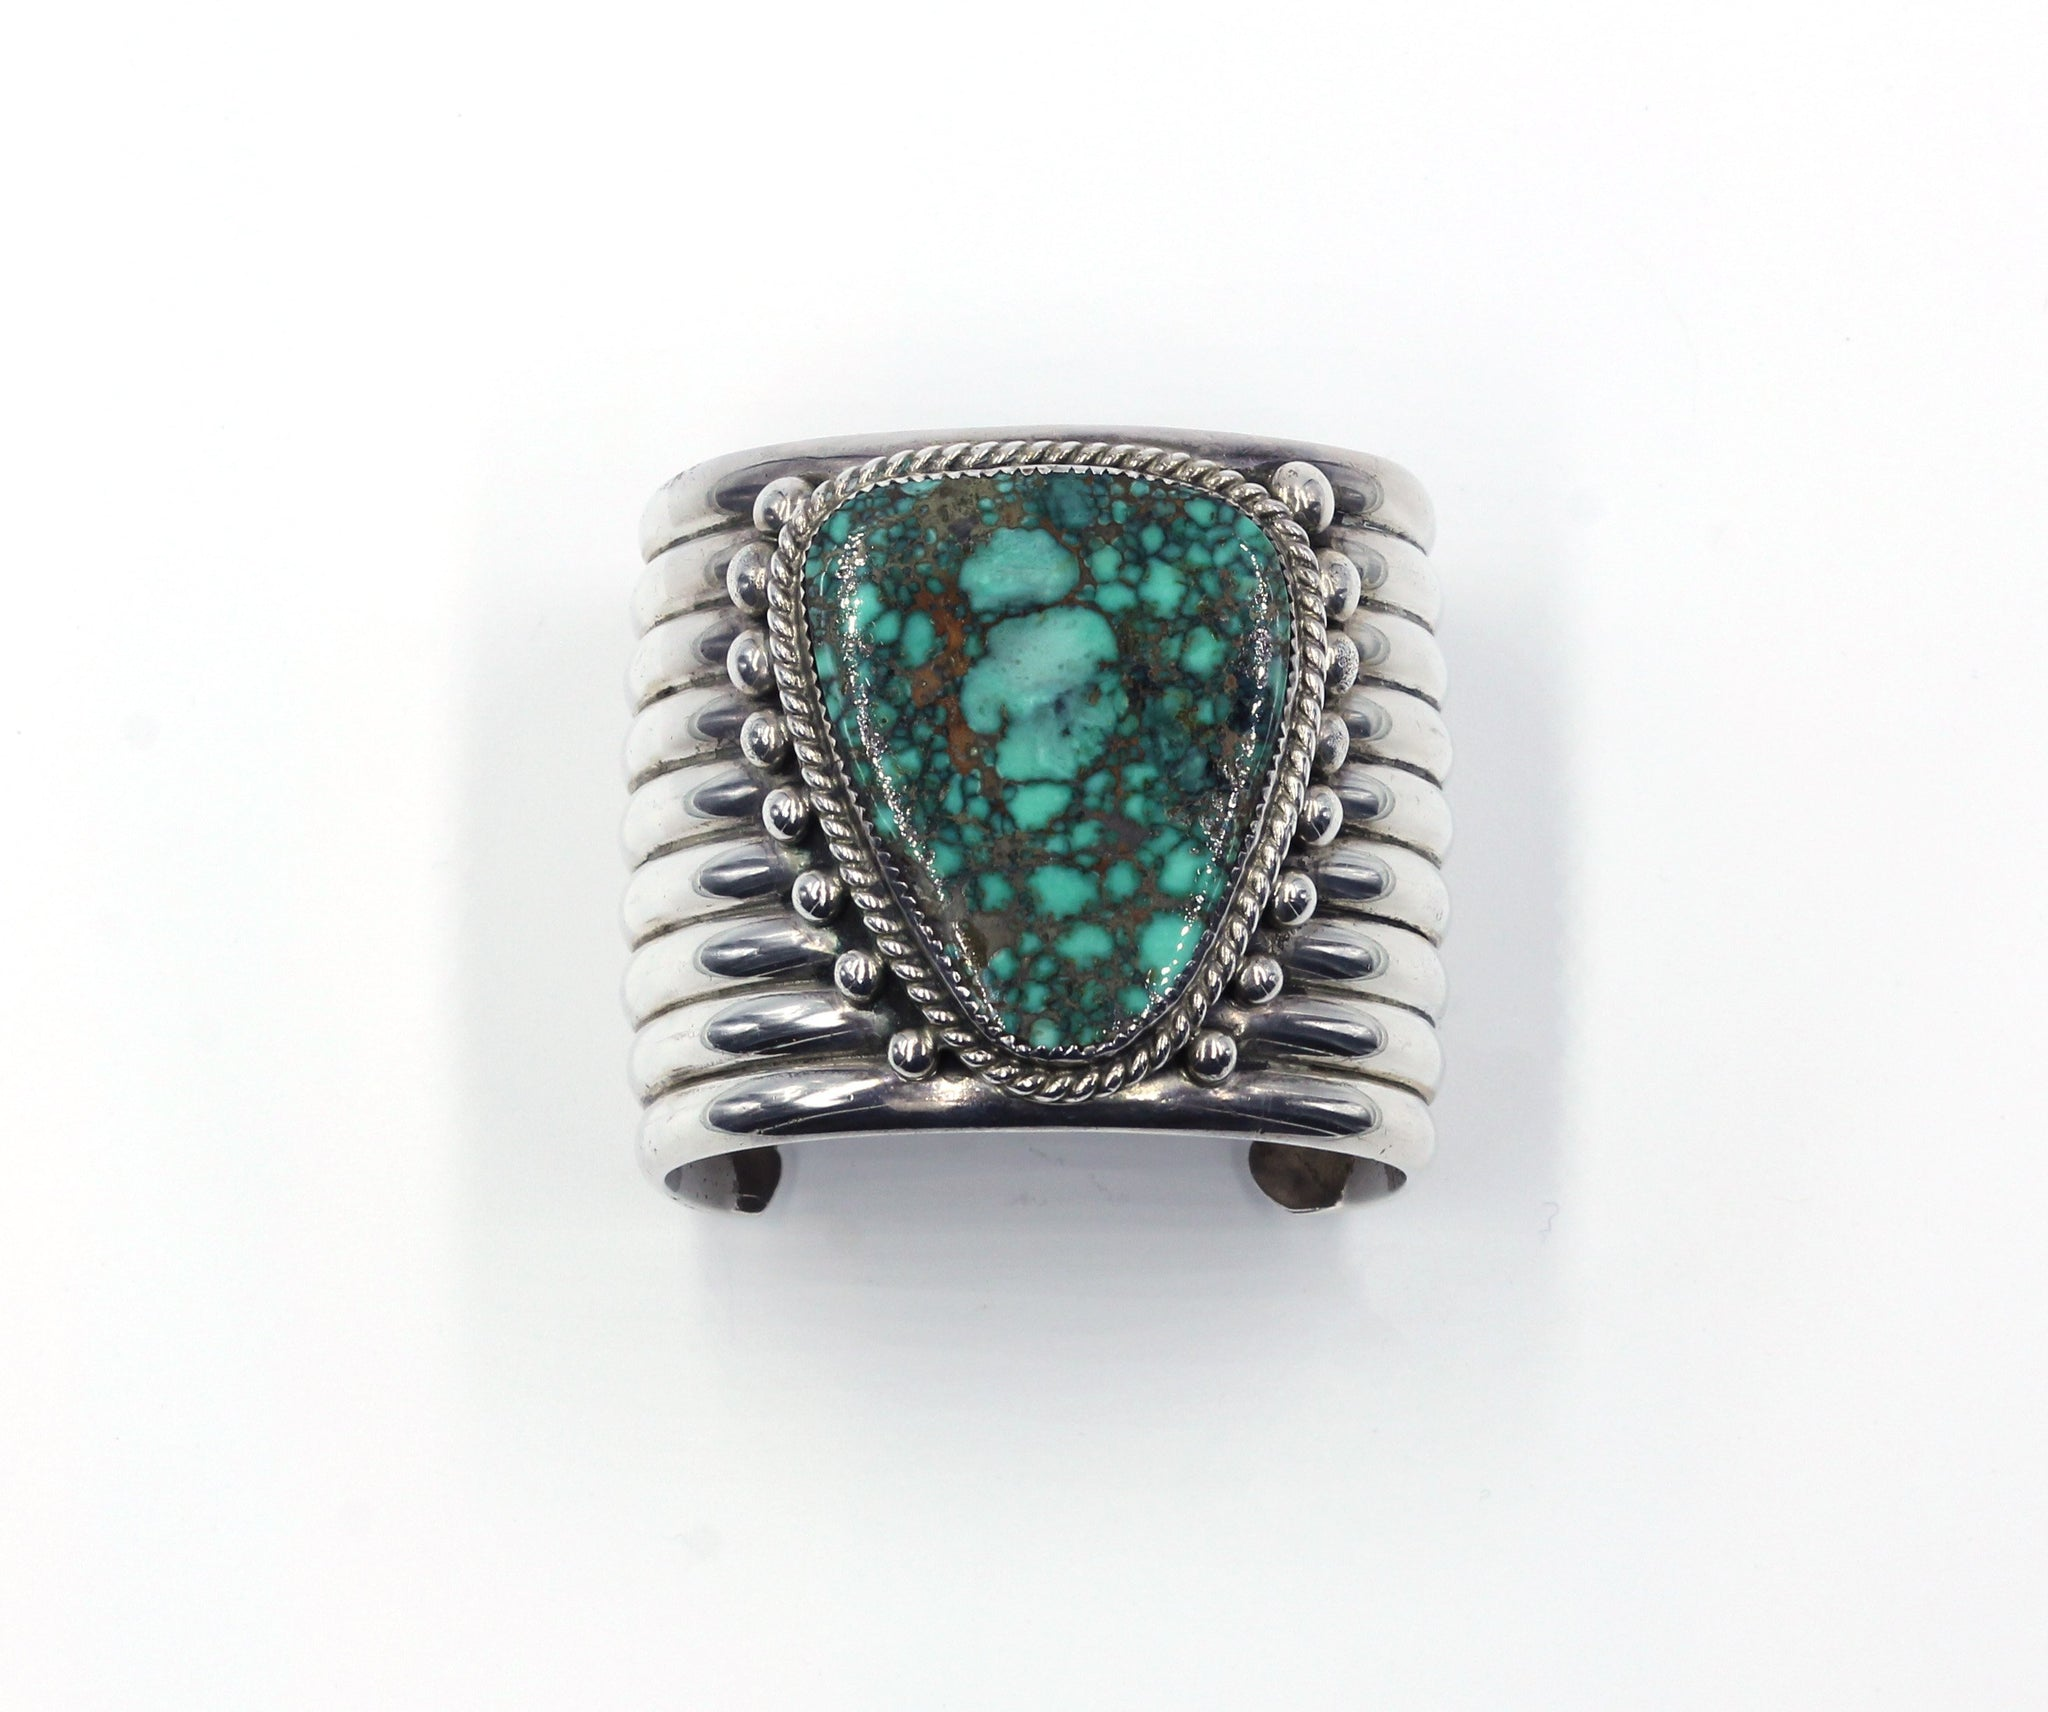 Vintage Native American Turquoise Silver Cuff Bracelet, SOLD